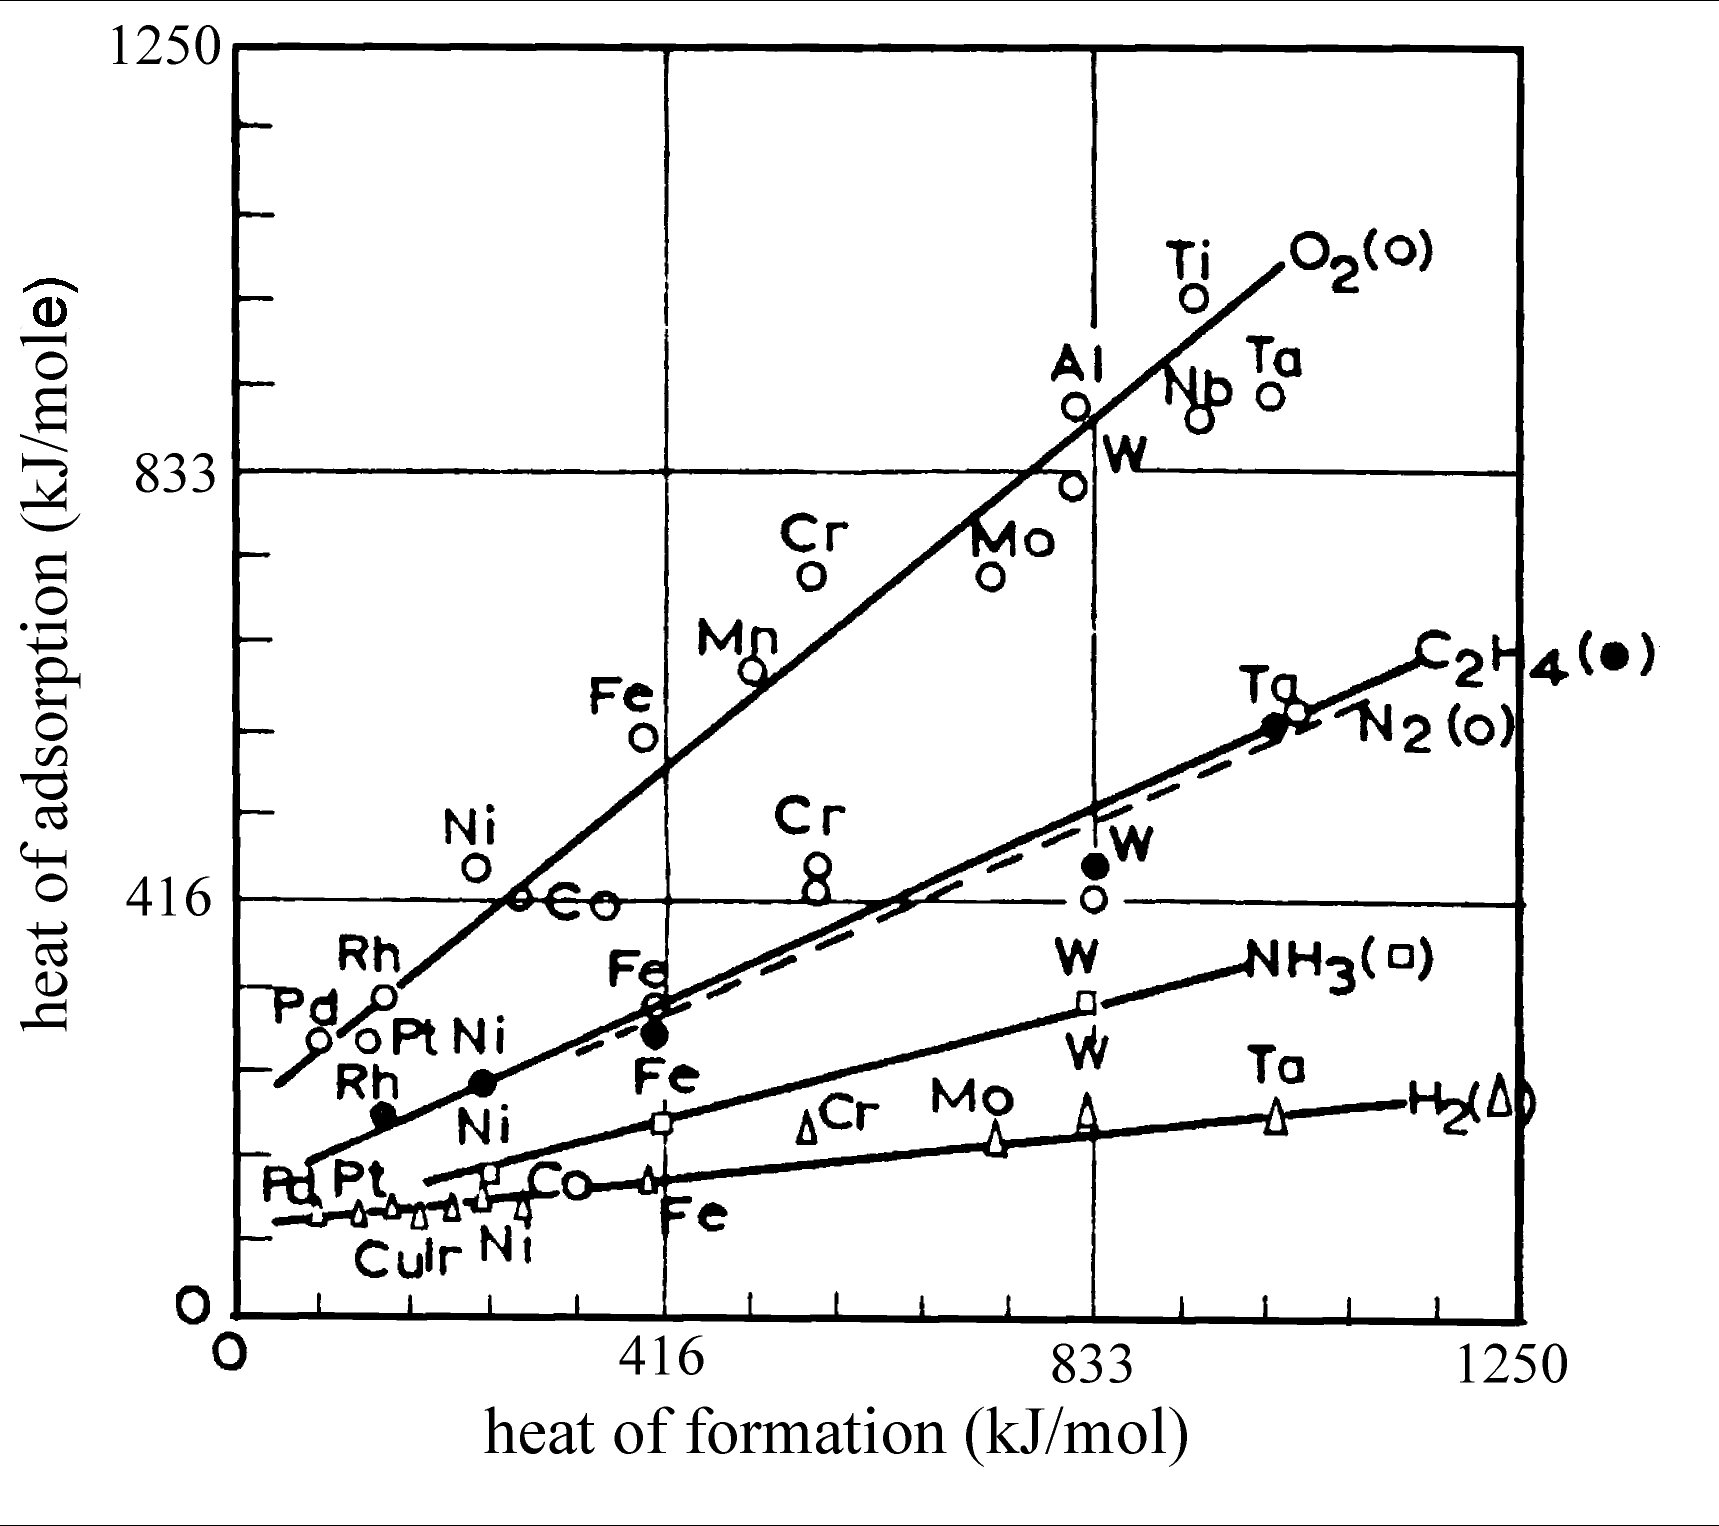 Gas-solid interaction - Gas adsorption energies versus metal oxide heat of formation